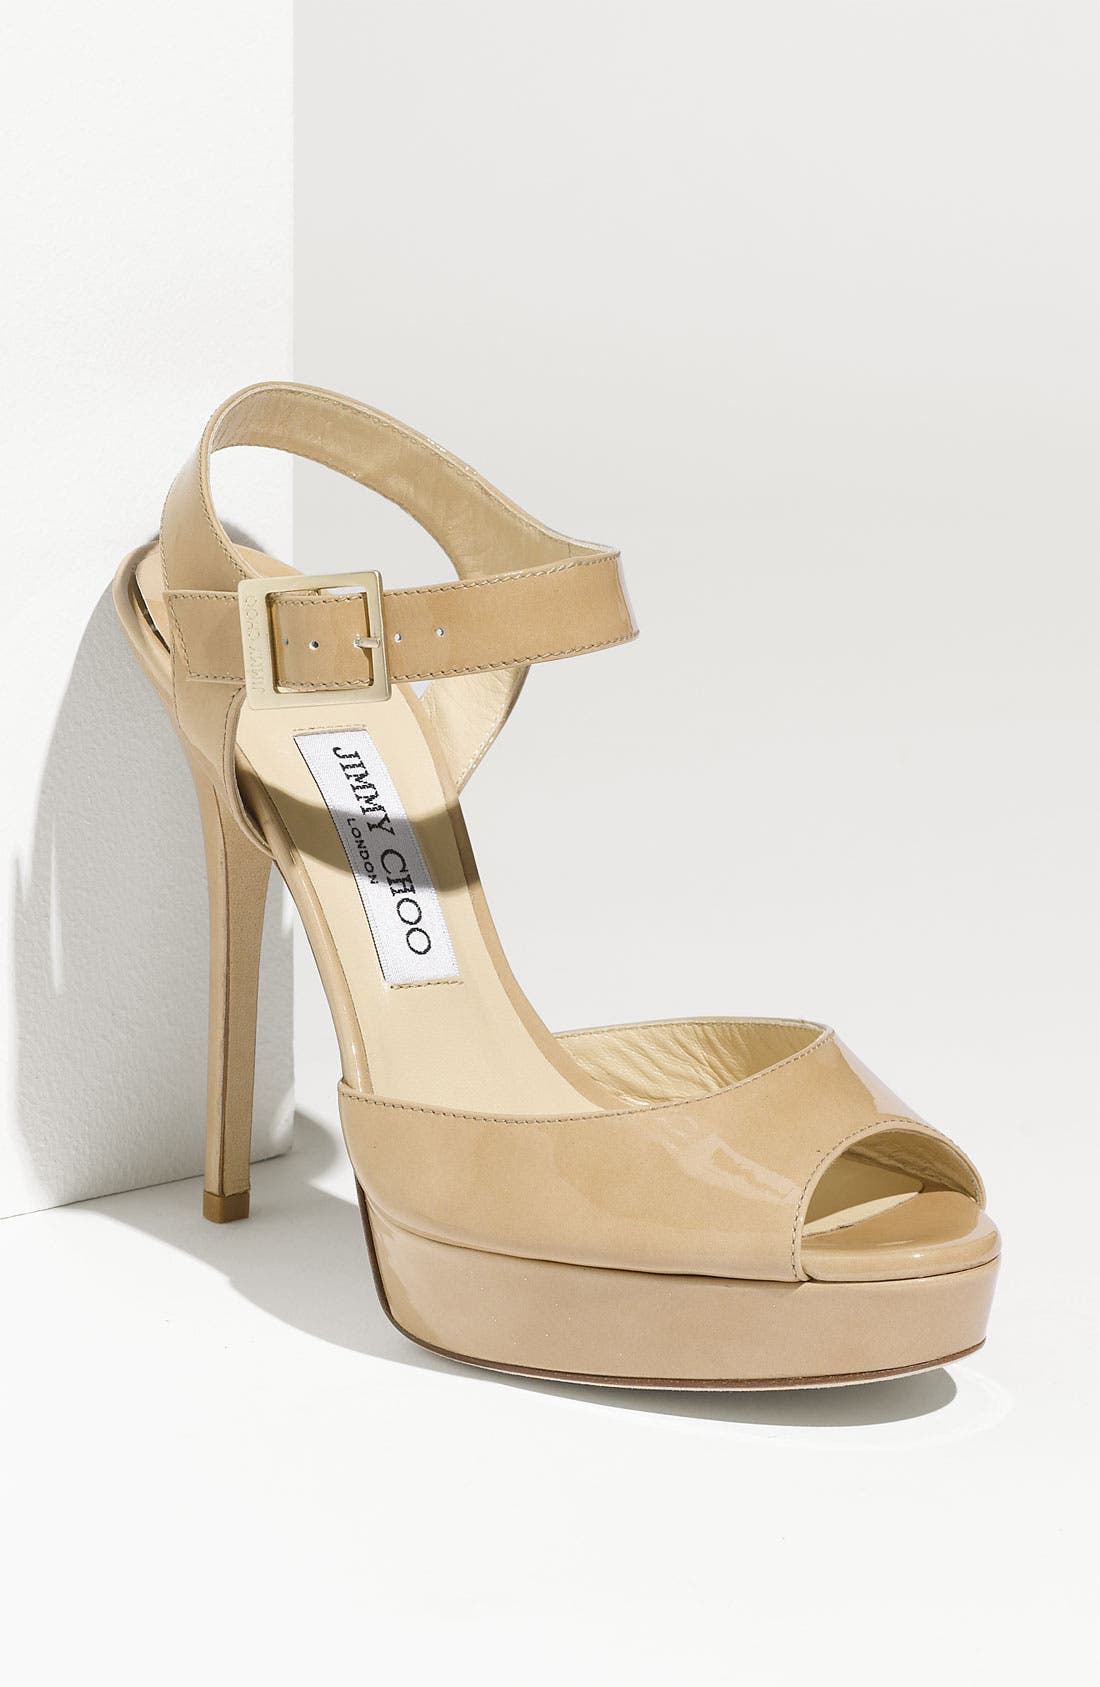 Alternate Image 1 Selected - Jimmy Choo 'Linda' Sandal